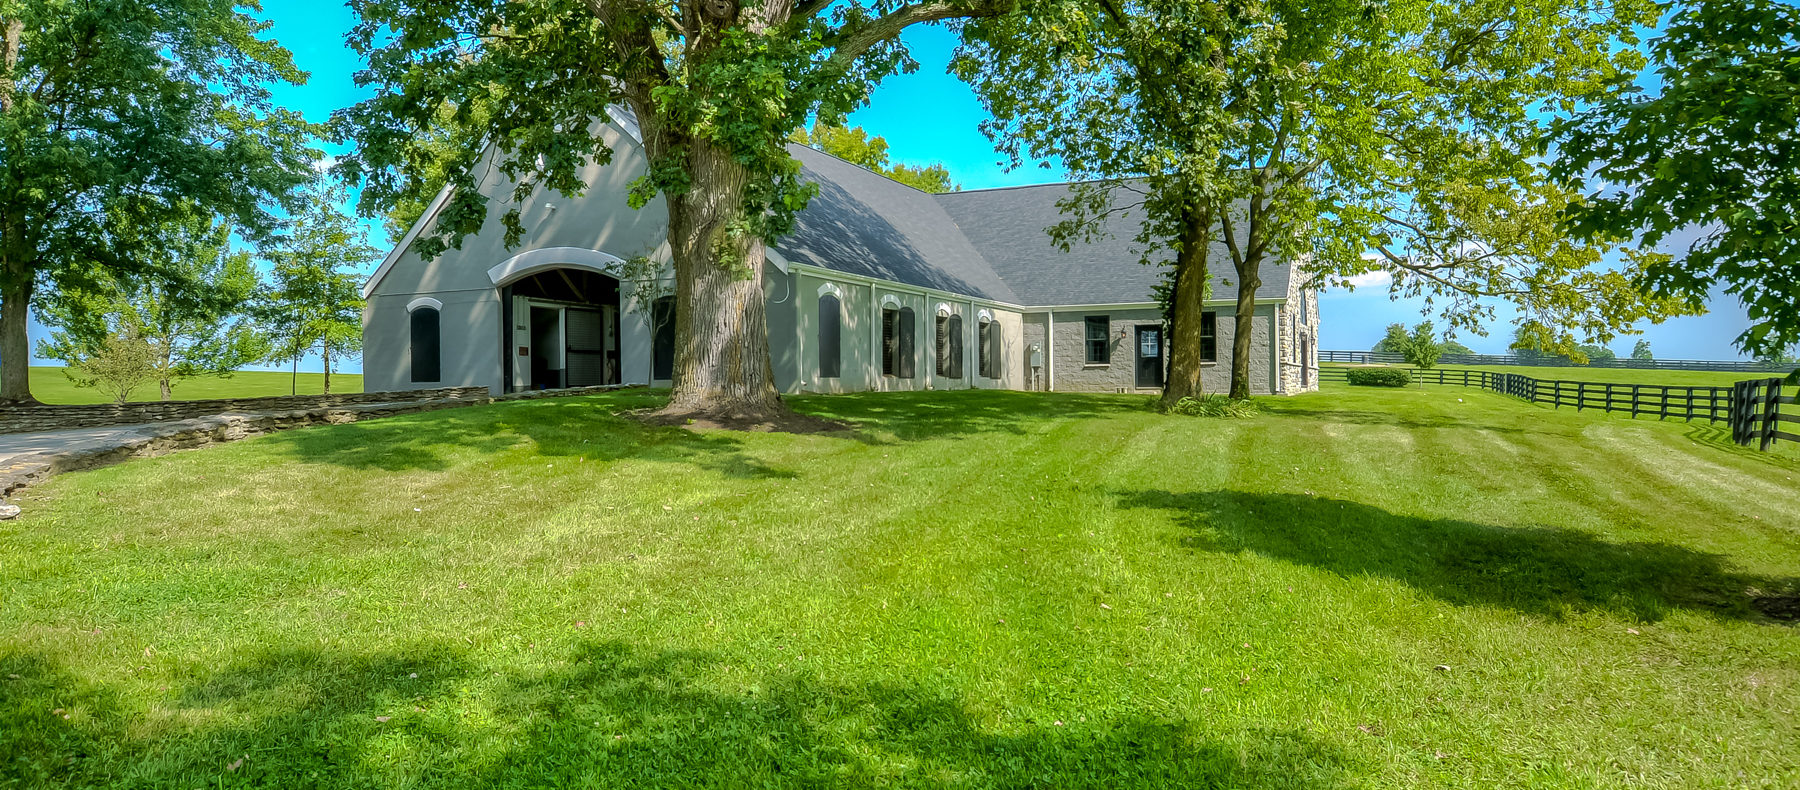 Biederman Real Estate Horse Farms For Sale In Kentucky